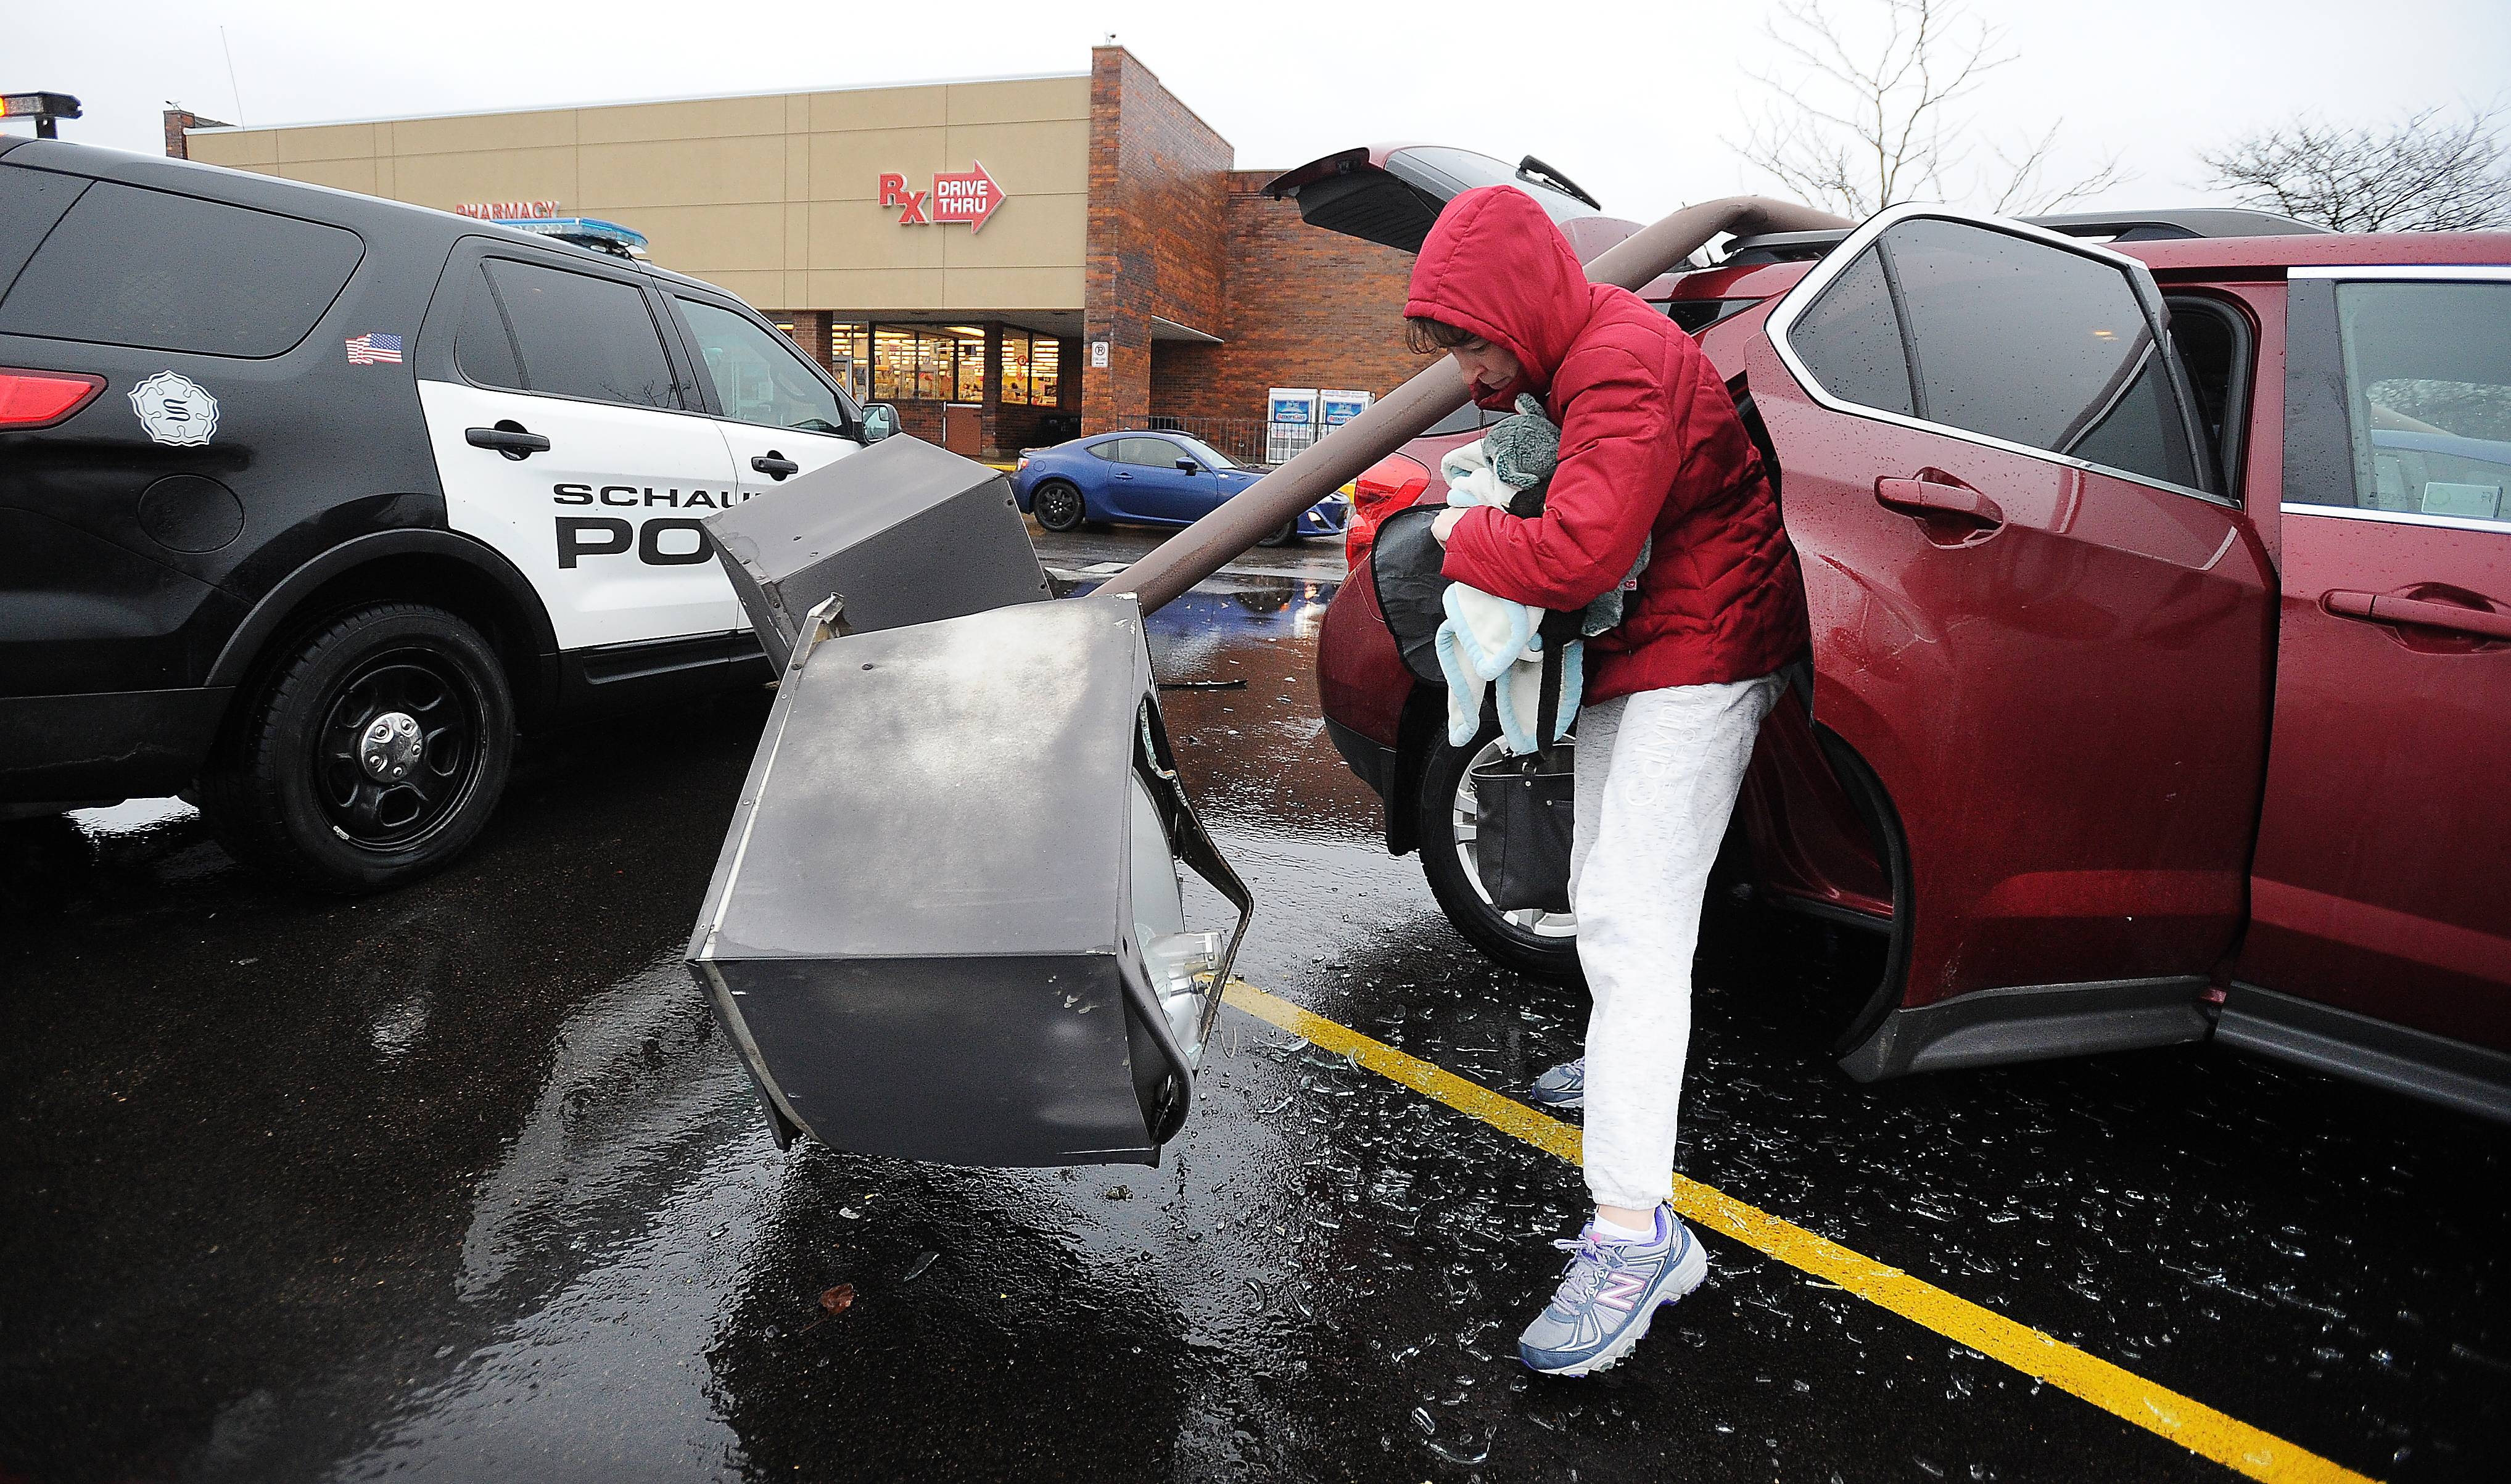 Nicki Scheck of Schaumburg steps gingerly around broken glass Tuesday after high winds toppled a light pole at the Jewel-Osco parking lot at Roselle and Wise roads while she was inside shopping. Her Chevy SUV and a Honda Fit both sustained heavy damage.